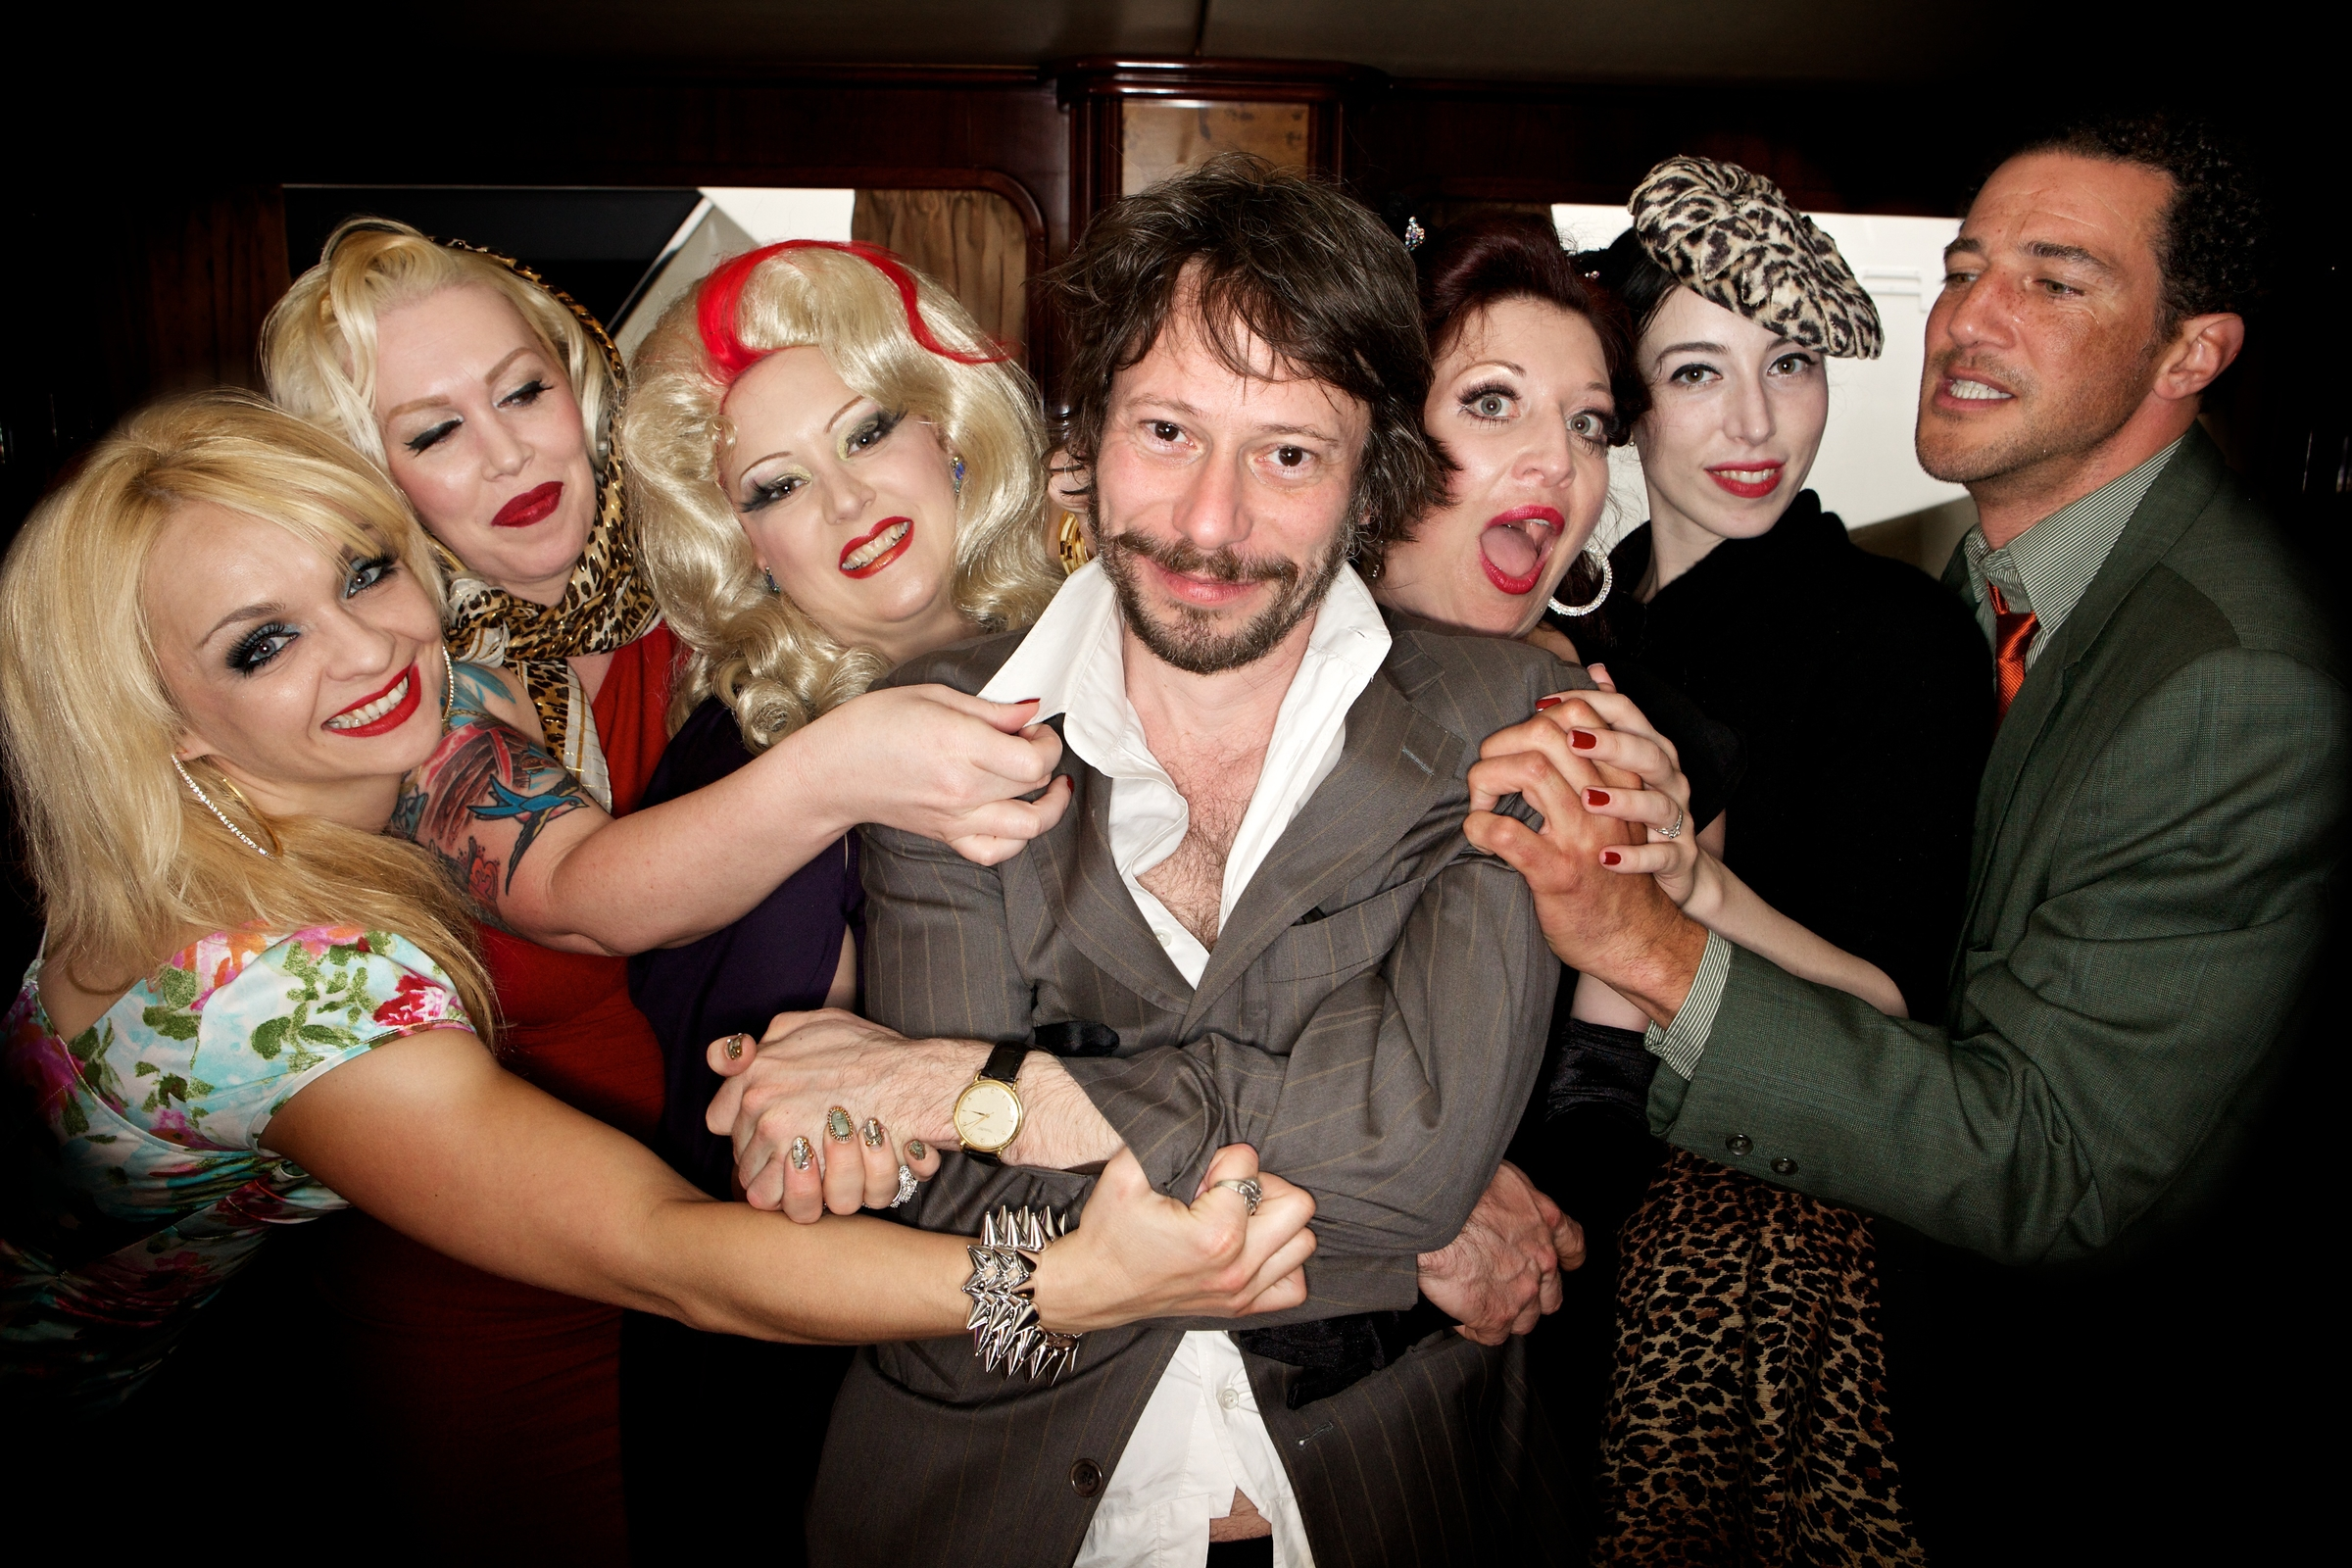 "French film director and actor Mathieu Amalric, surrounded by his cast, from left, Julie Atlas Muz, Mimi Le Meaux, Dirty Martini, Kitten On The Keys, Evie Lovelle and Roky Roulette. Their Film ""Tournée"" was presented at the 63rd Cannes Film Festival."